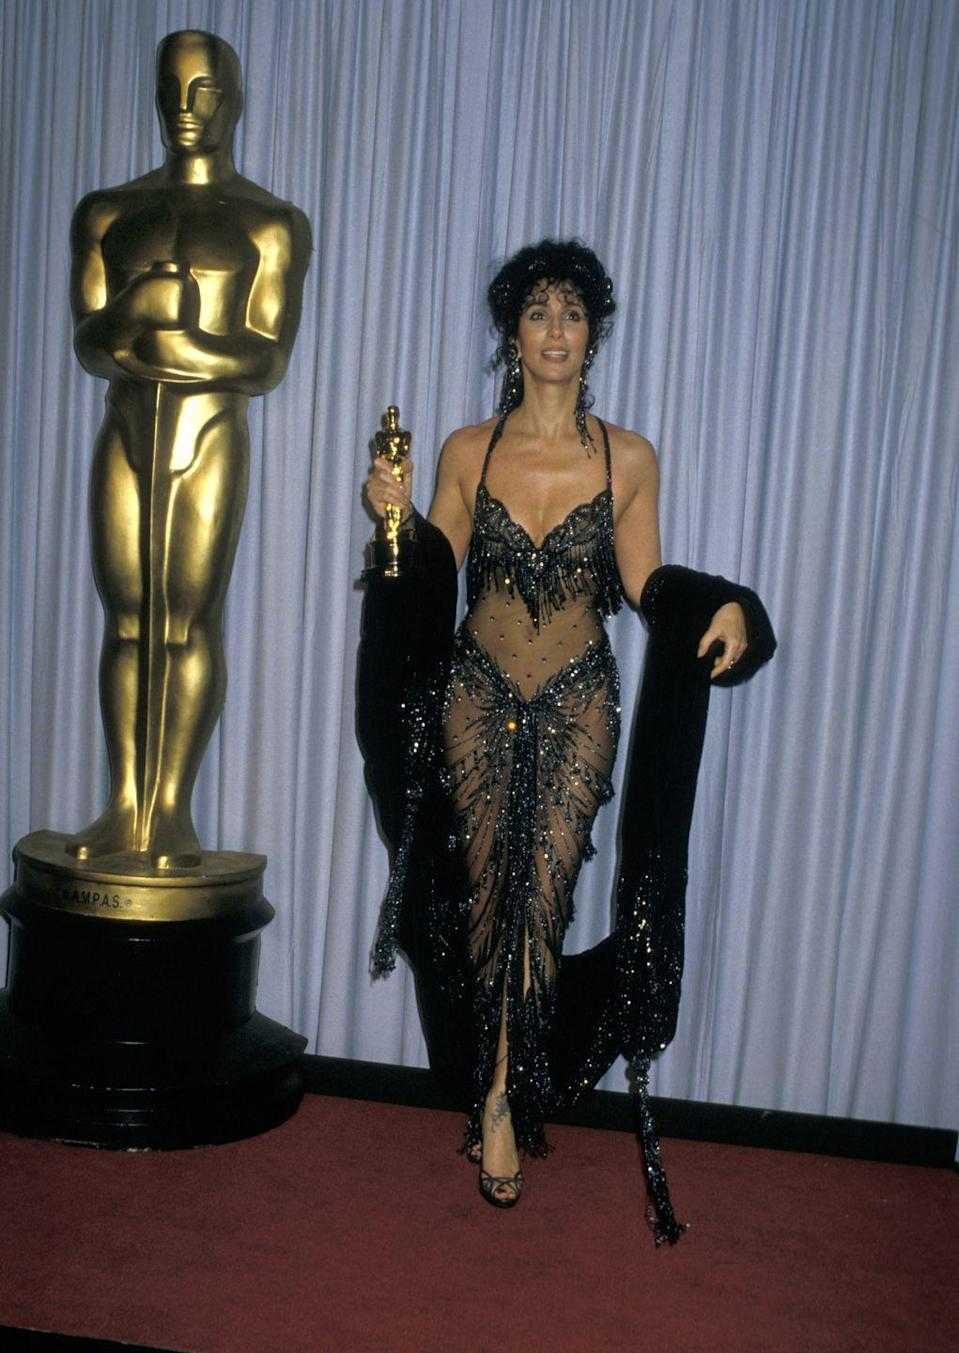 <p>Cher holds her Oscar for Best Actress in the film Moonstruck.</p>